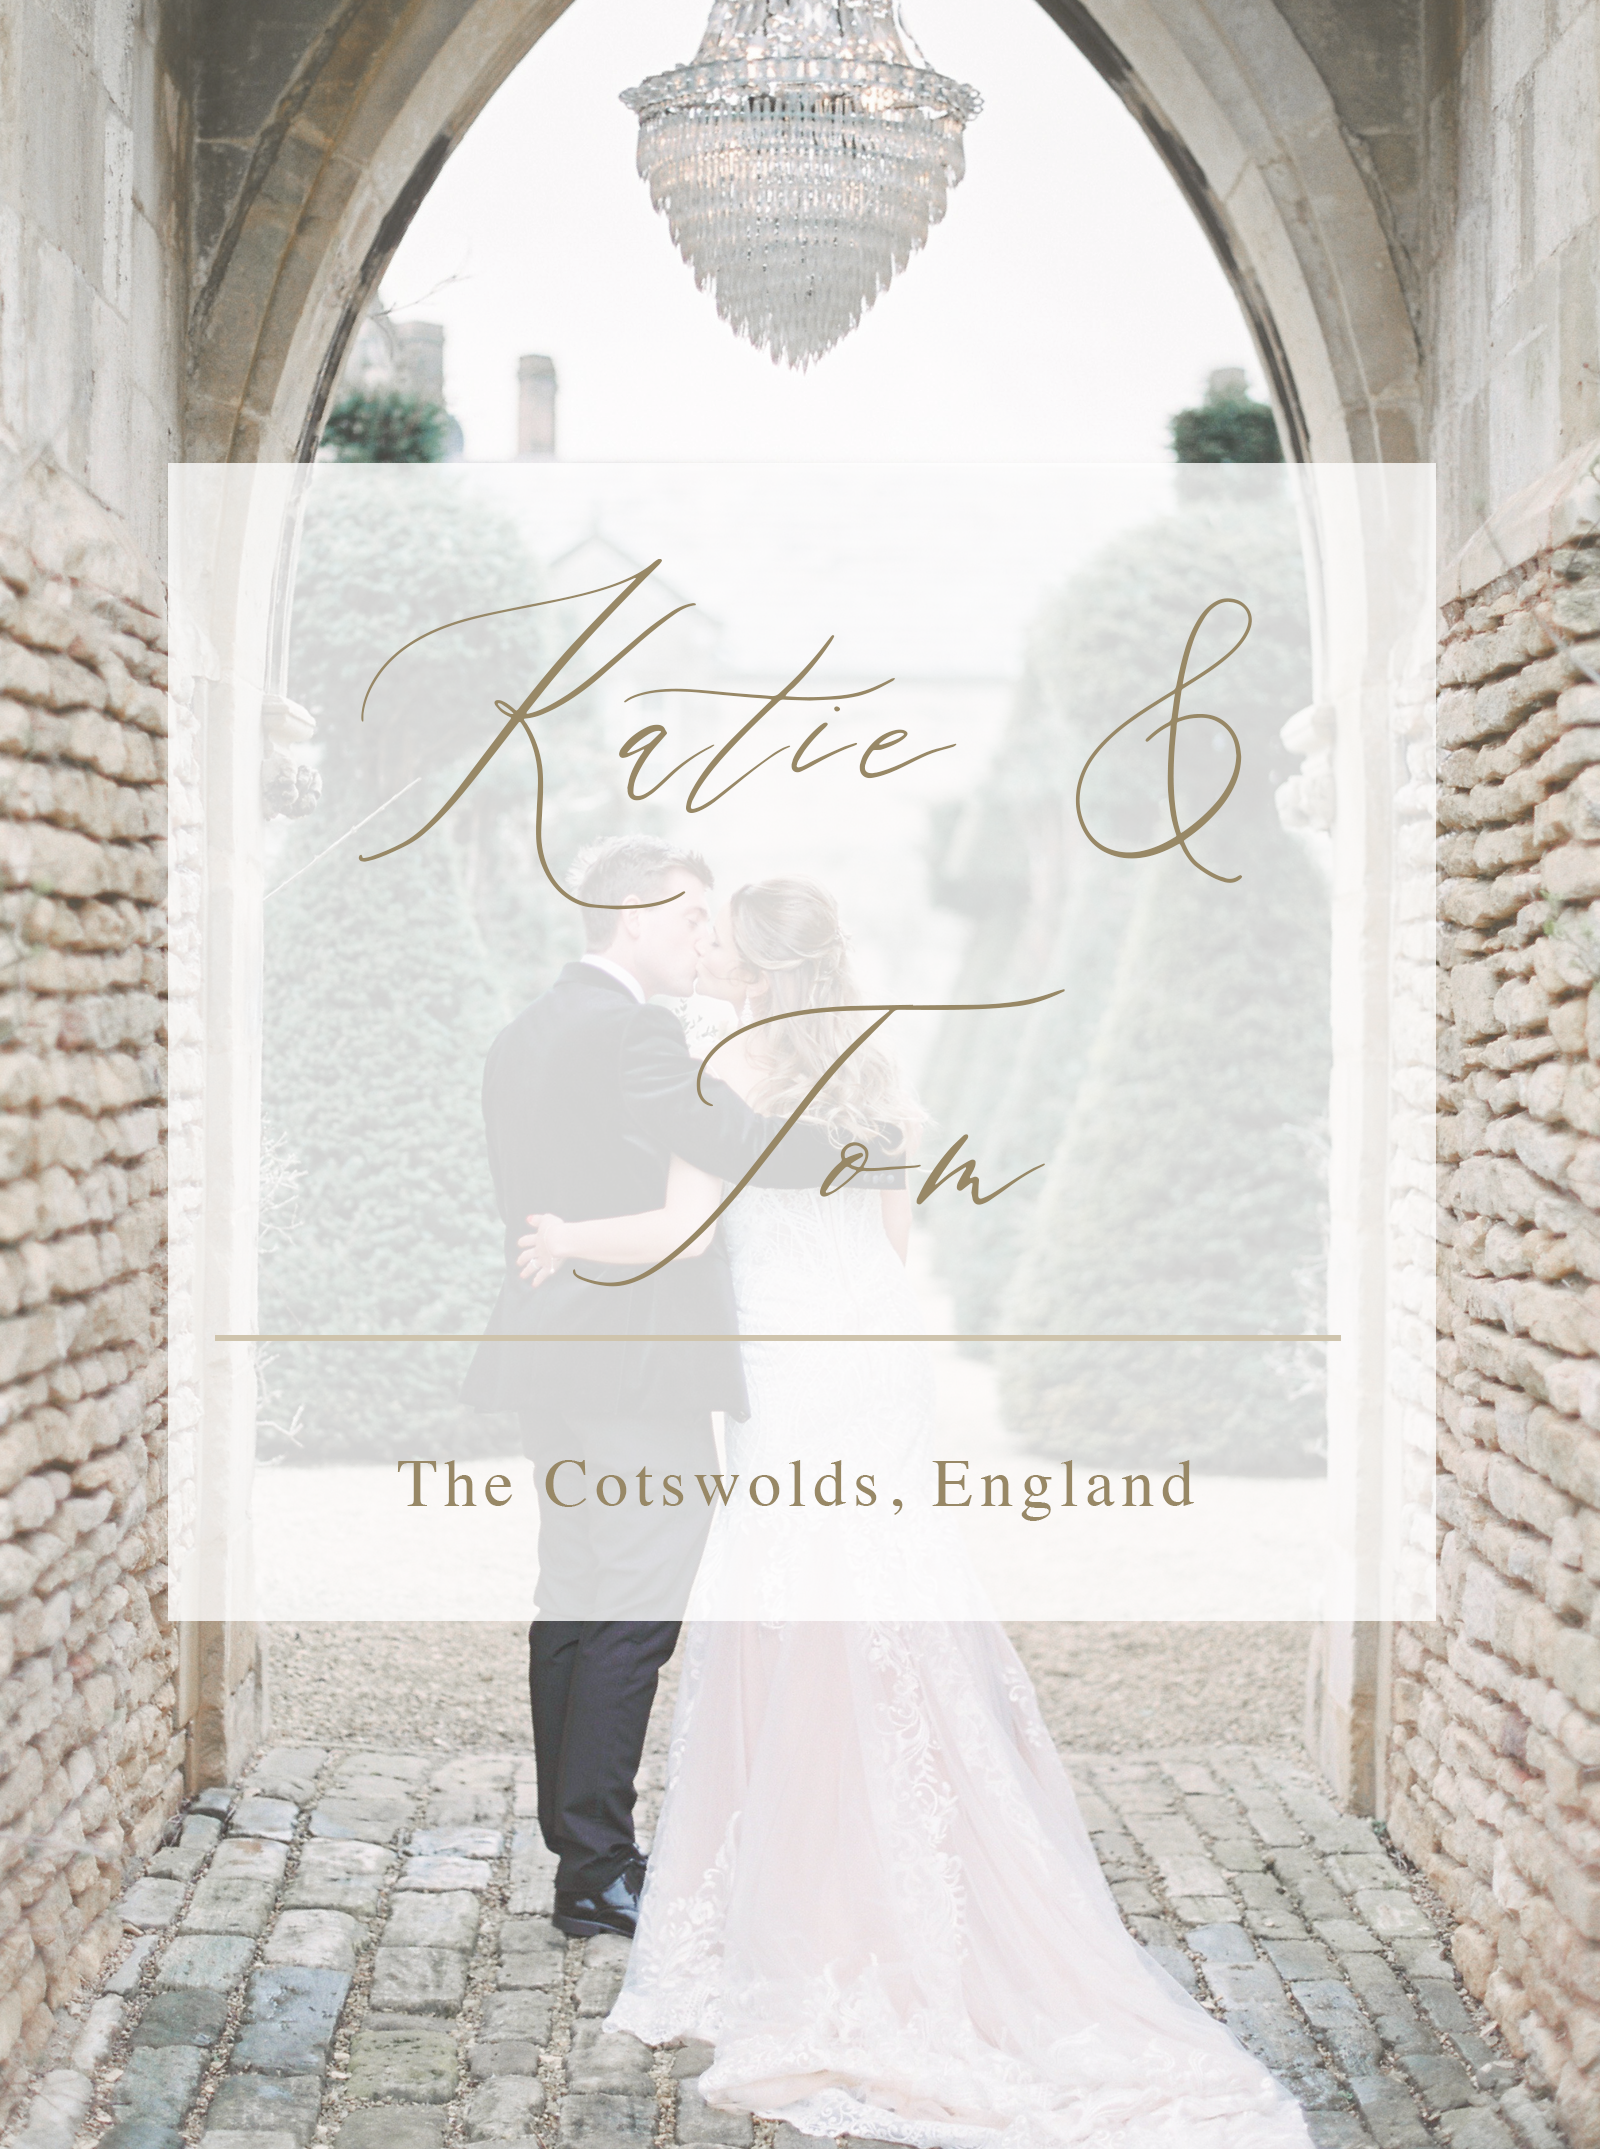 Luxury Wedding Planner UK _ Katie & Tom English Country House Wedding _ Cotswolds Wedding _ Soft Pink White and Silver Toned Green Neutral Tones The Lost Orangery _ Katie Julia Photography 849.png